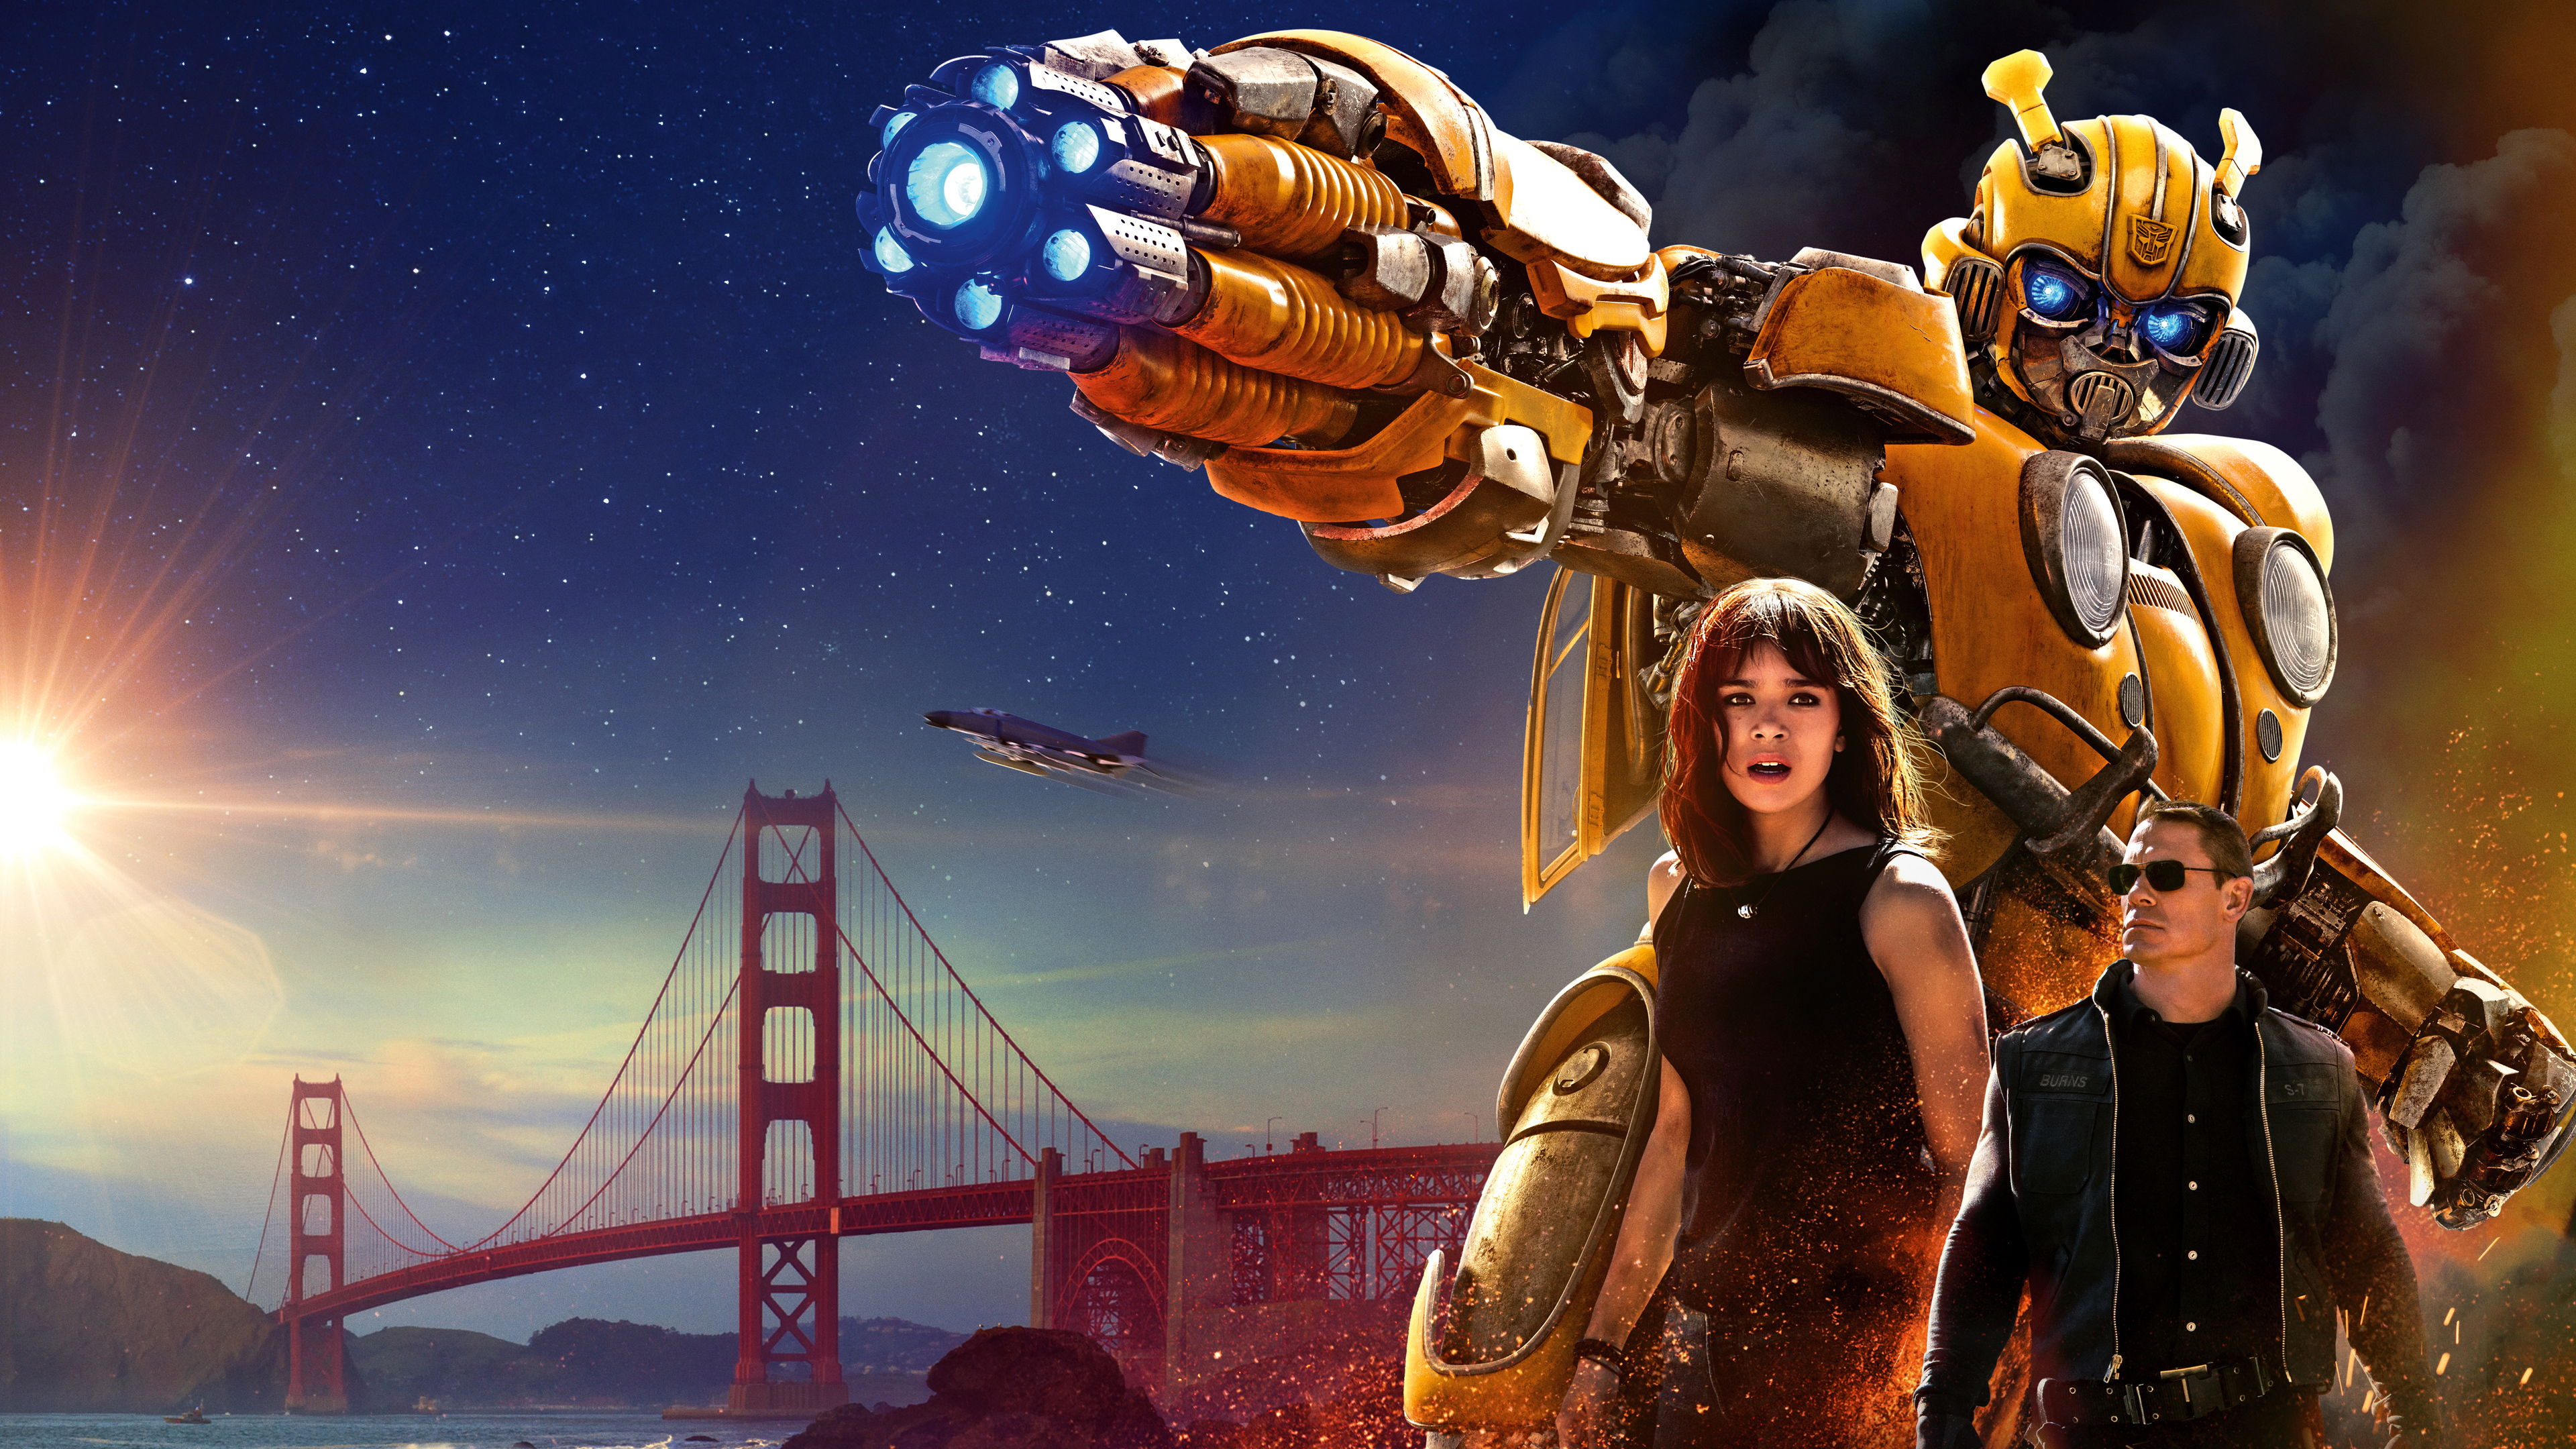 2018 Movie Posters: Bumblebee Movie Poster 2018 4k Movies Wallpapers, John